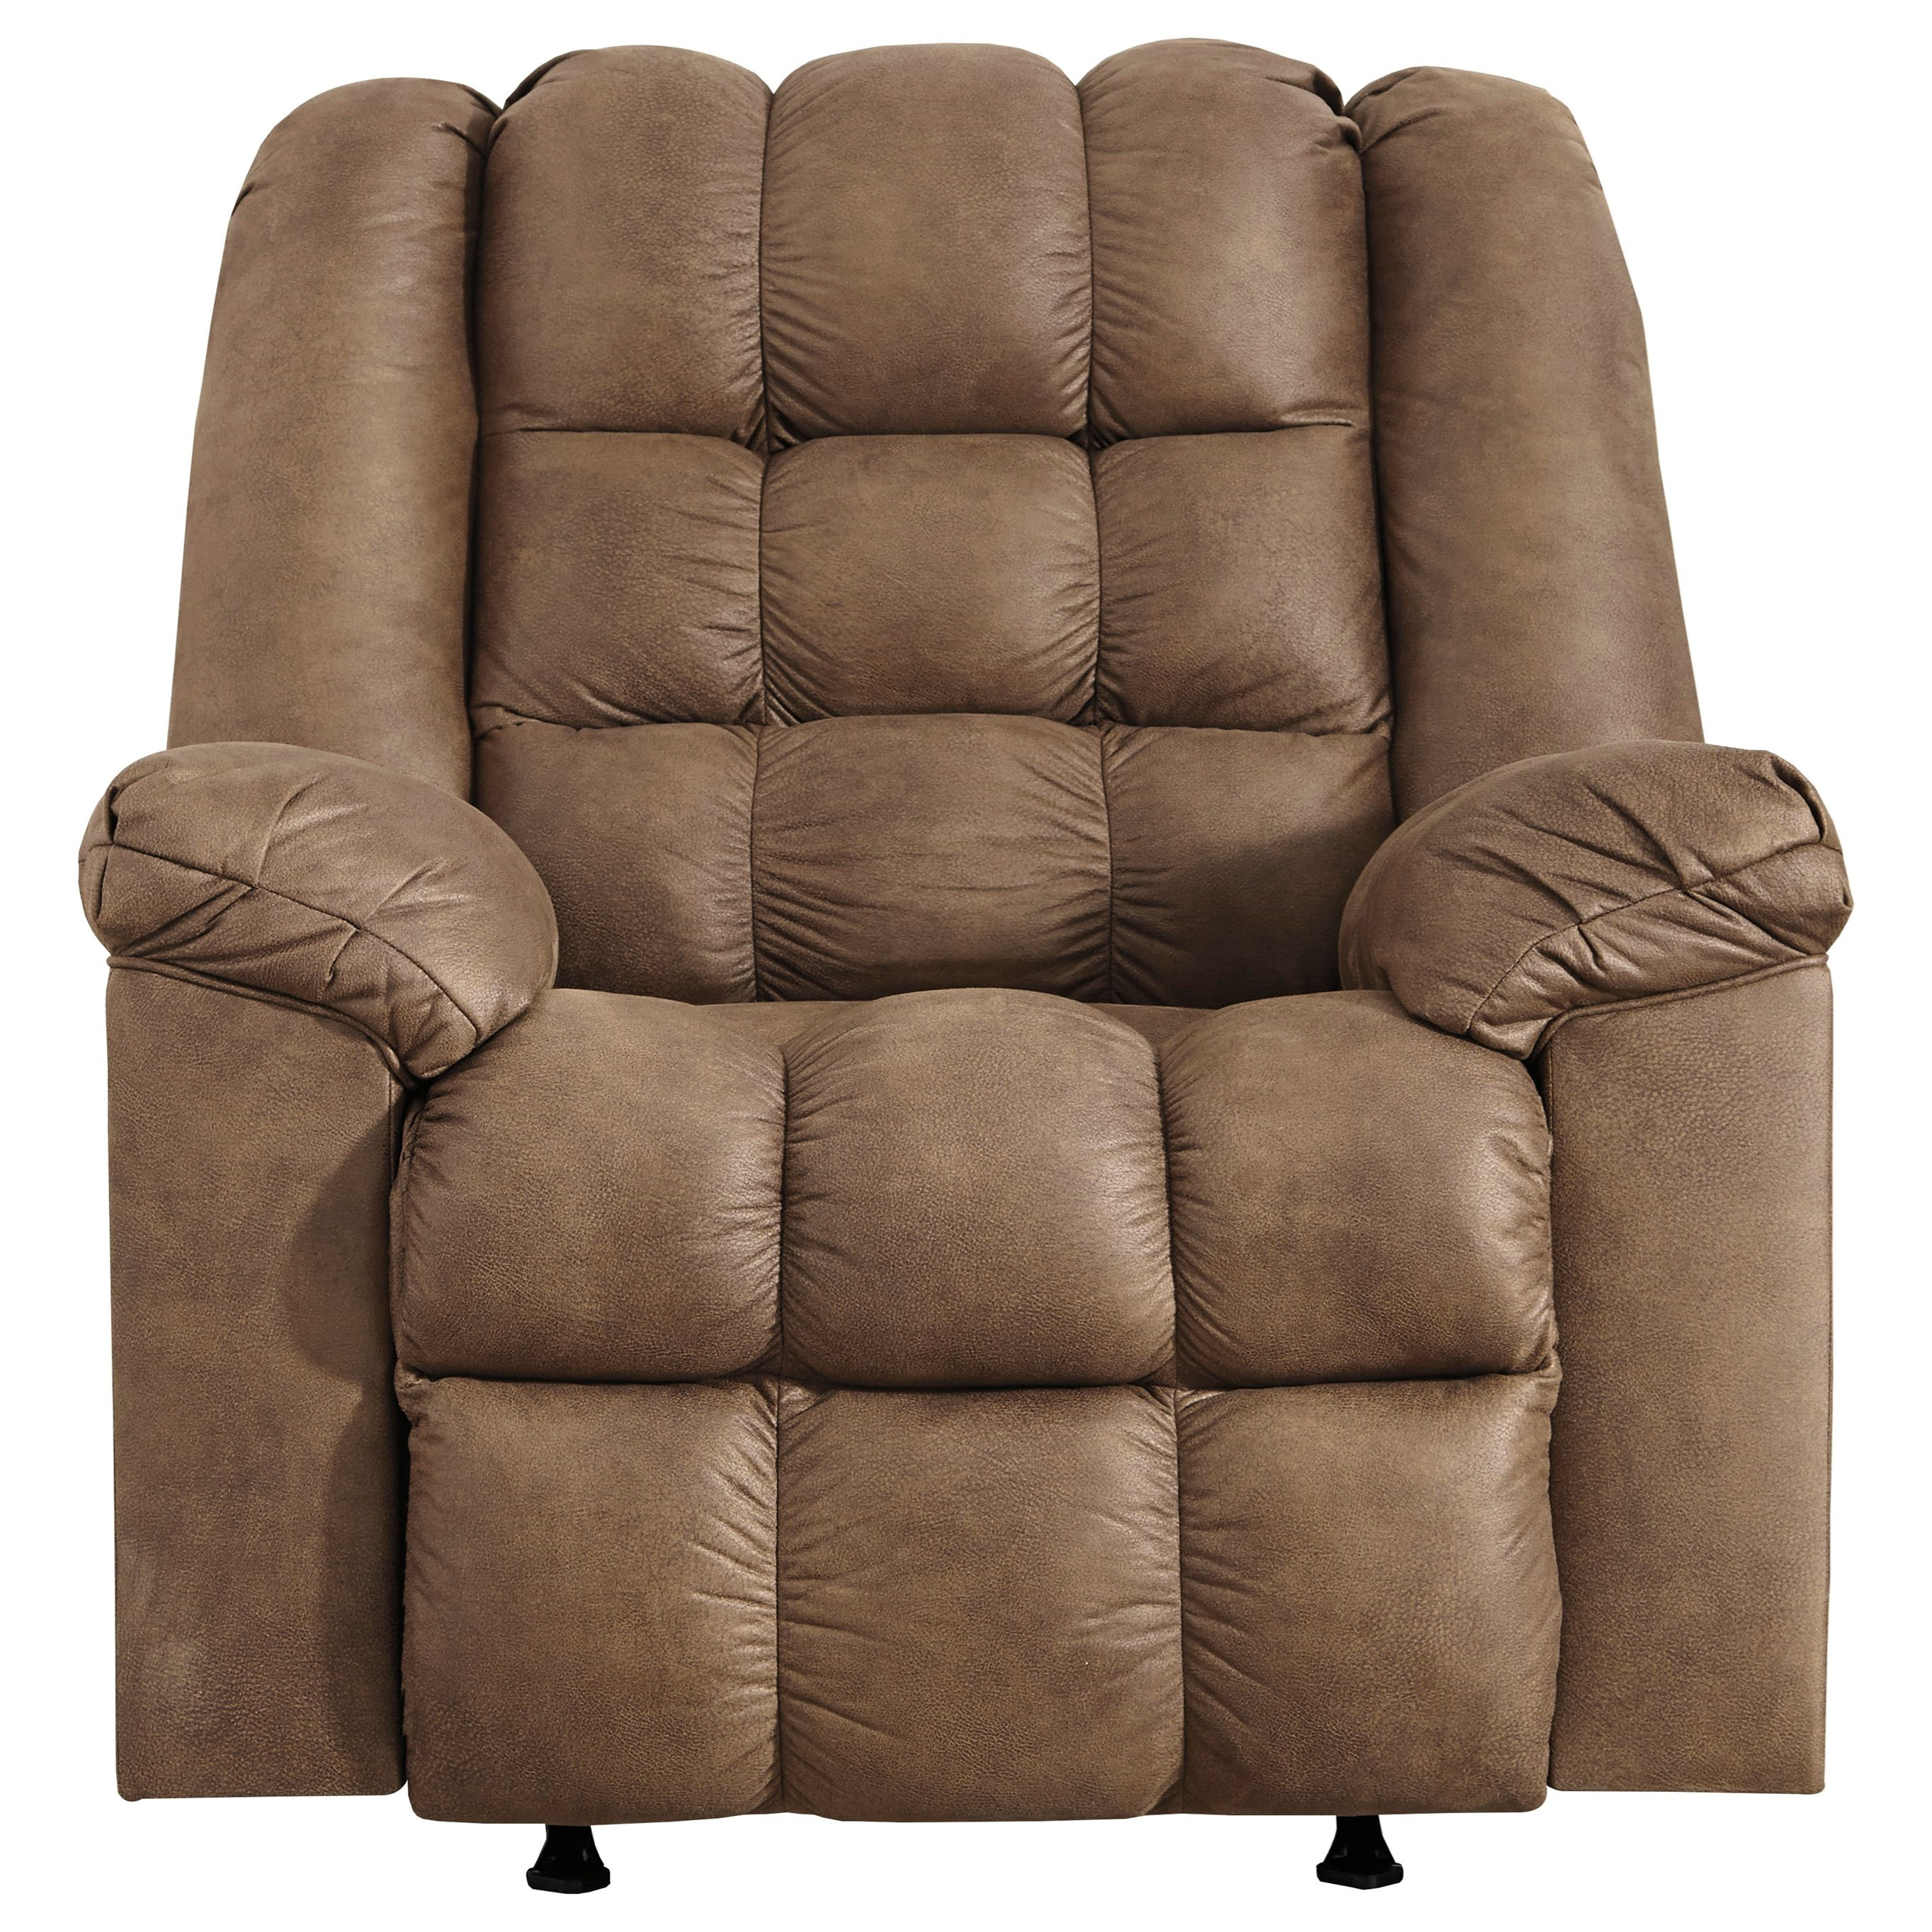 Adrano Rocker Recliner with Heat and Massage by Signature Design by Ashley at Carolina Direct